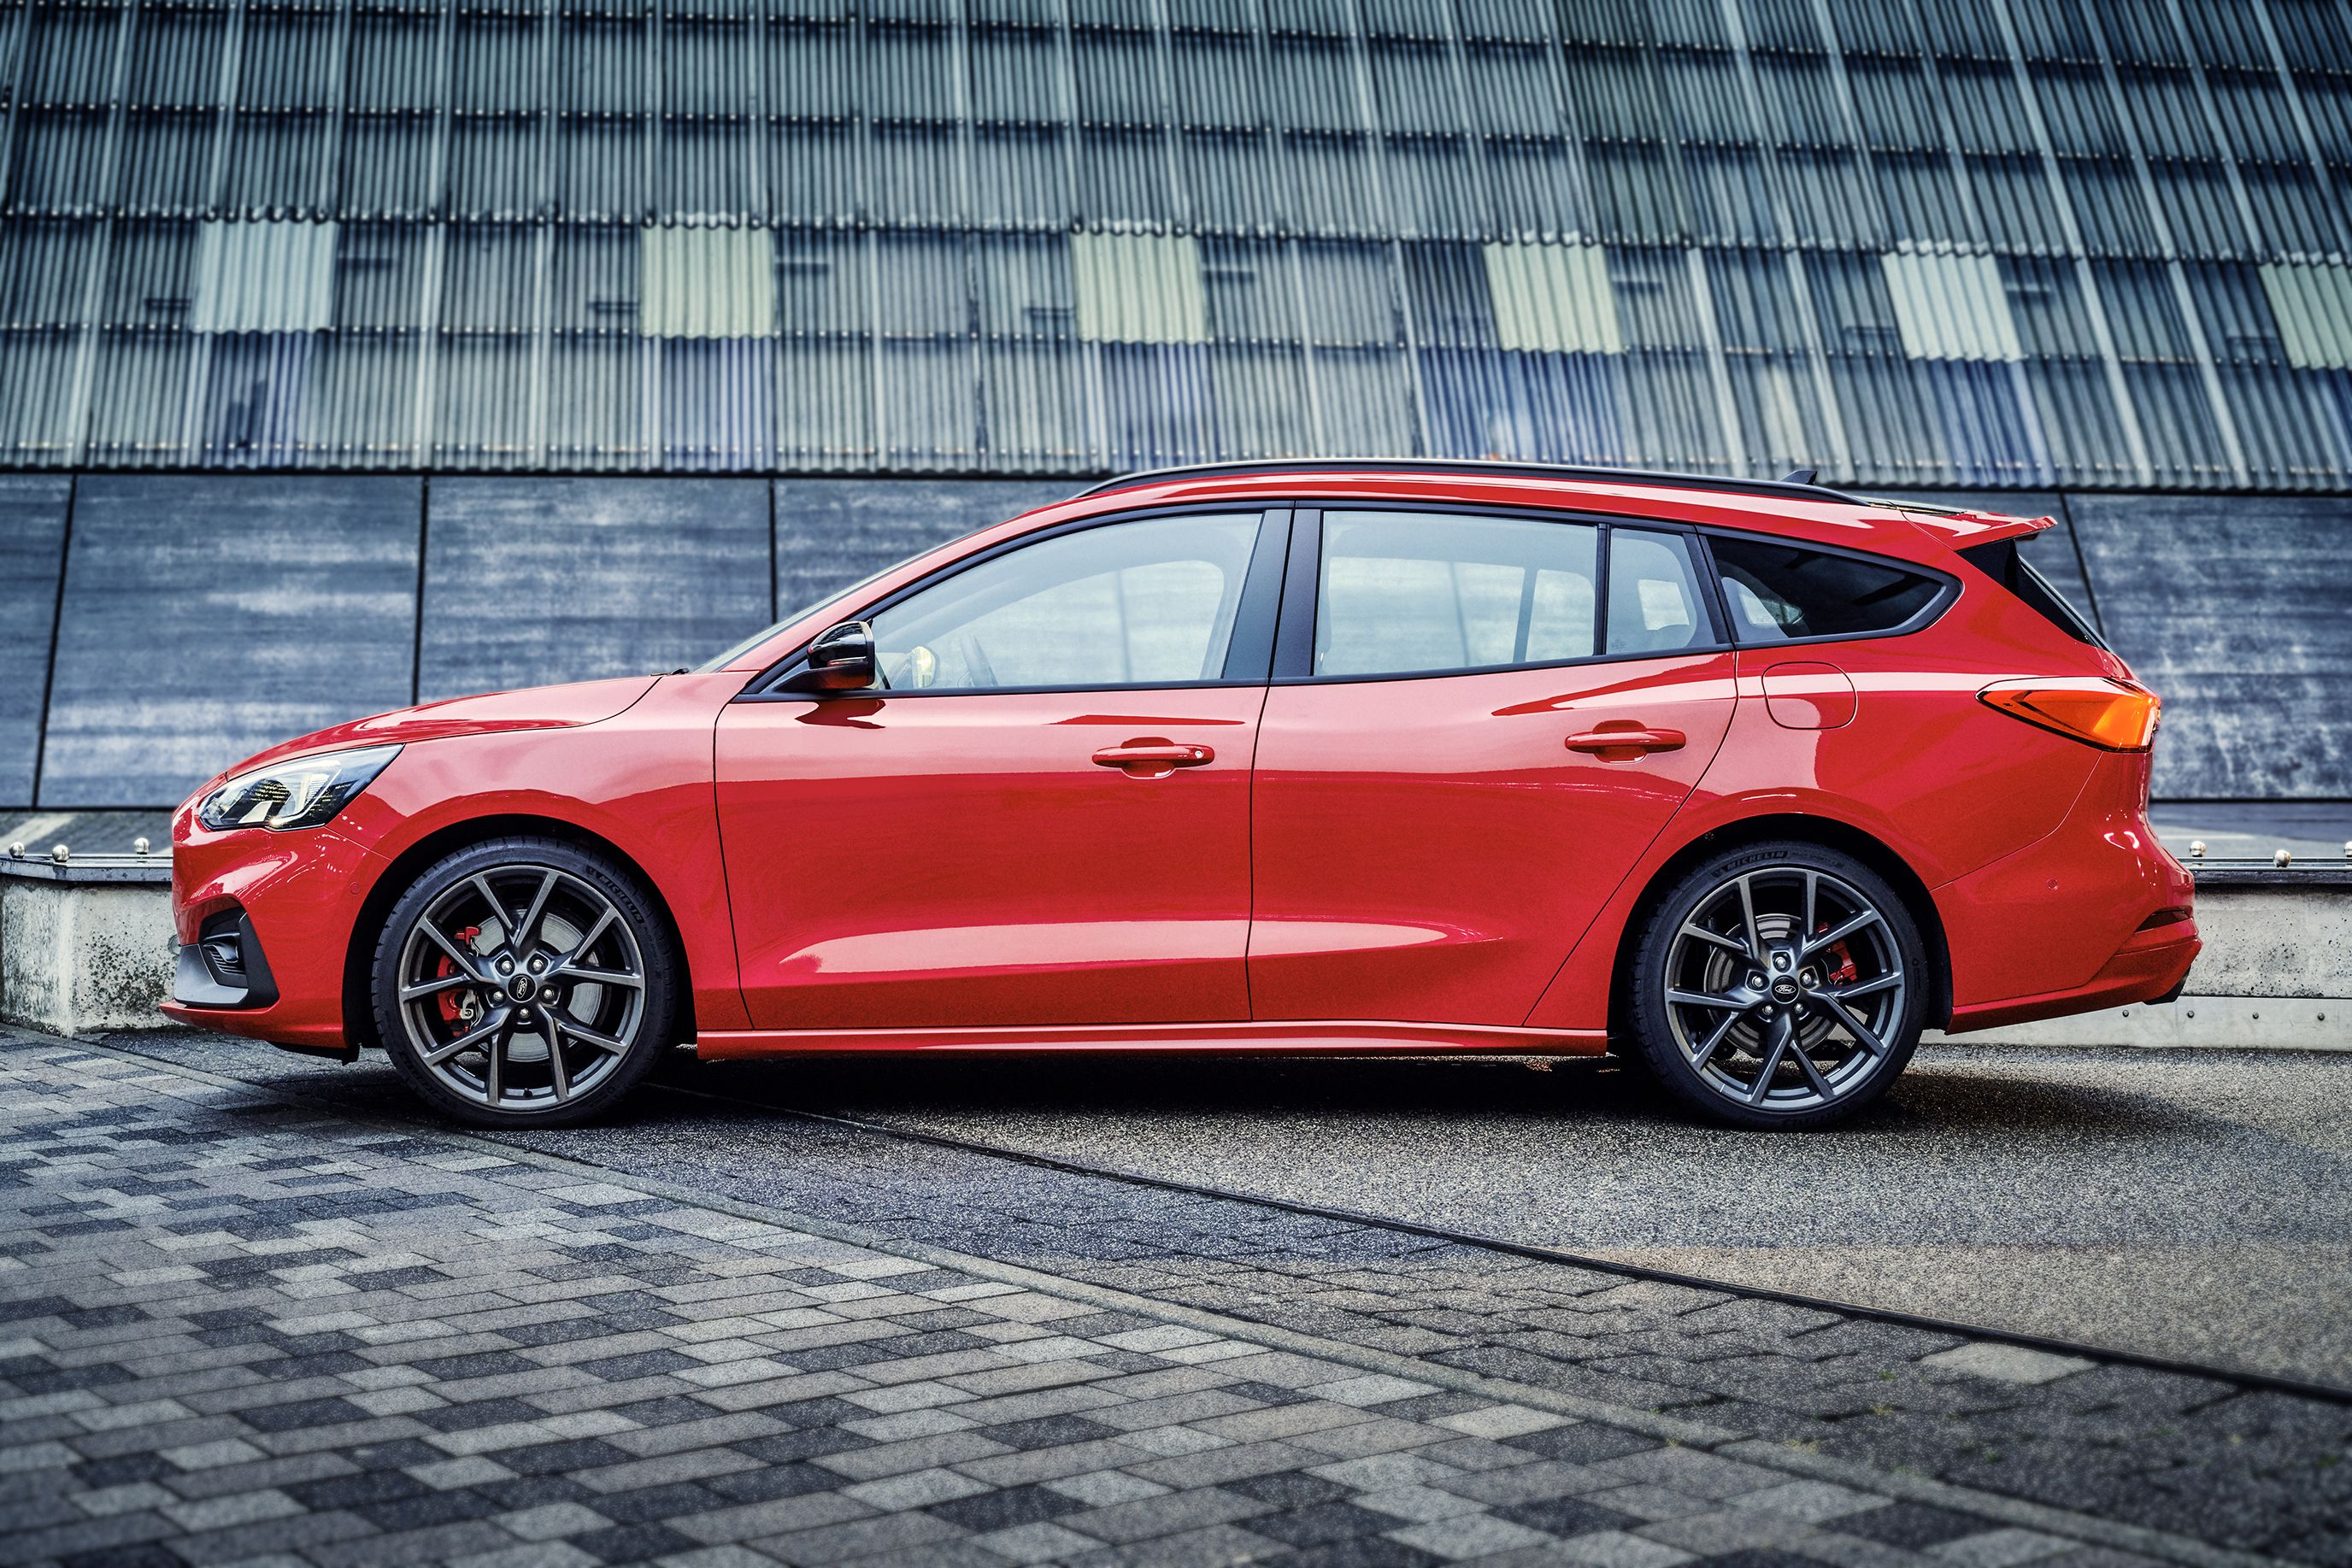 2020 Focus St Wagon Revealed With Pictures Specs Hp And Price